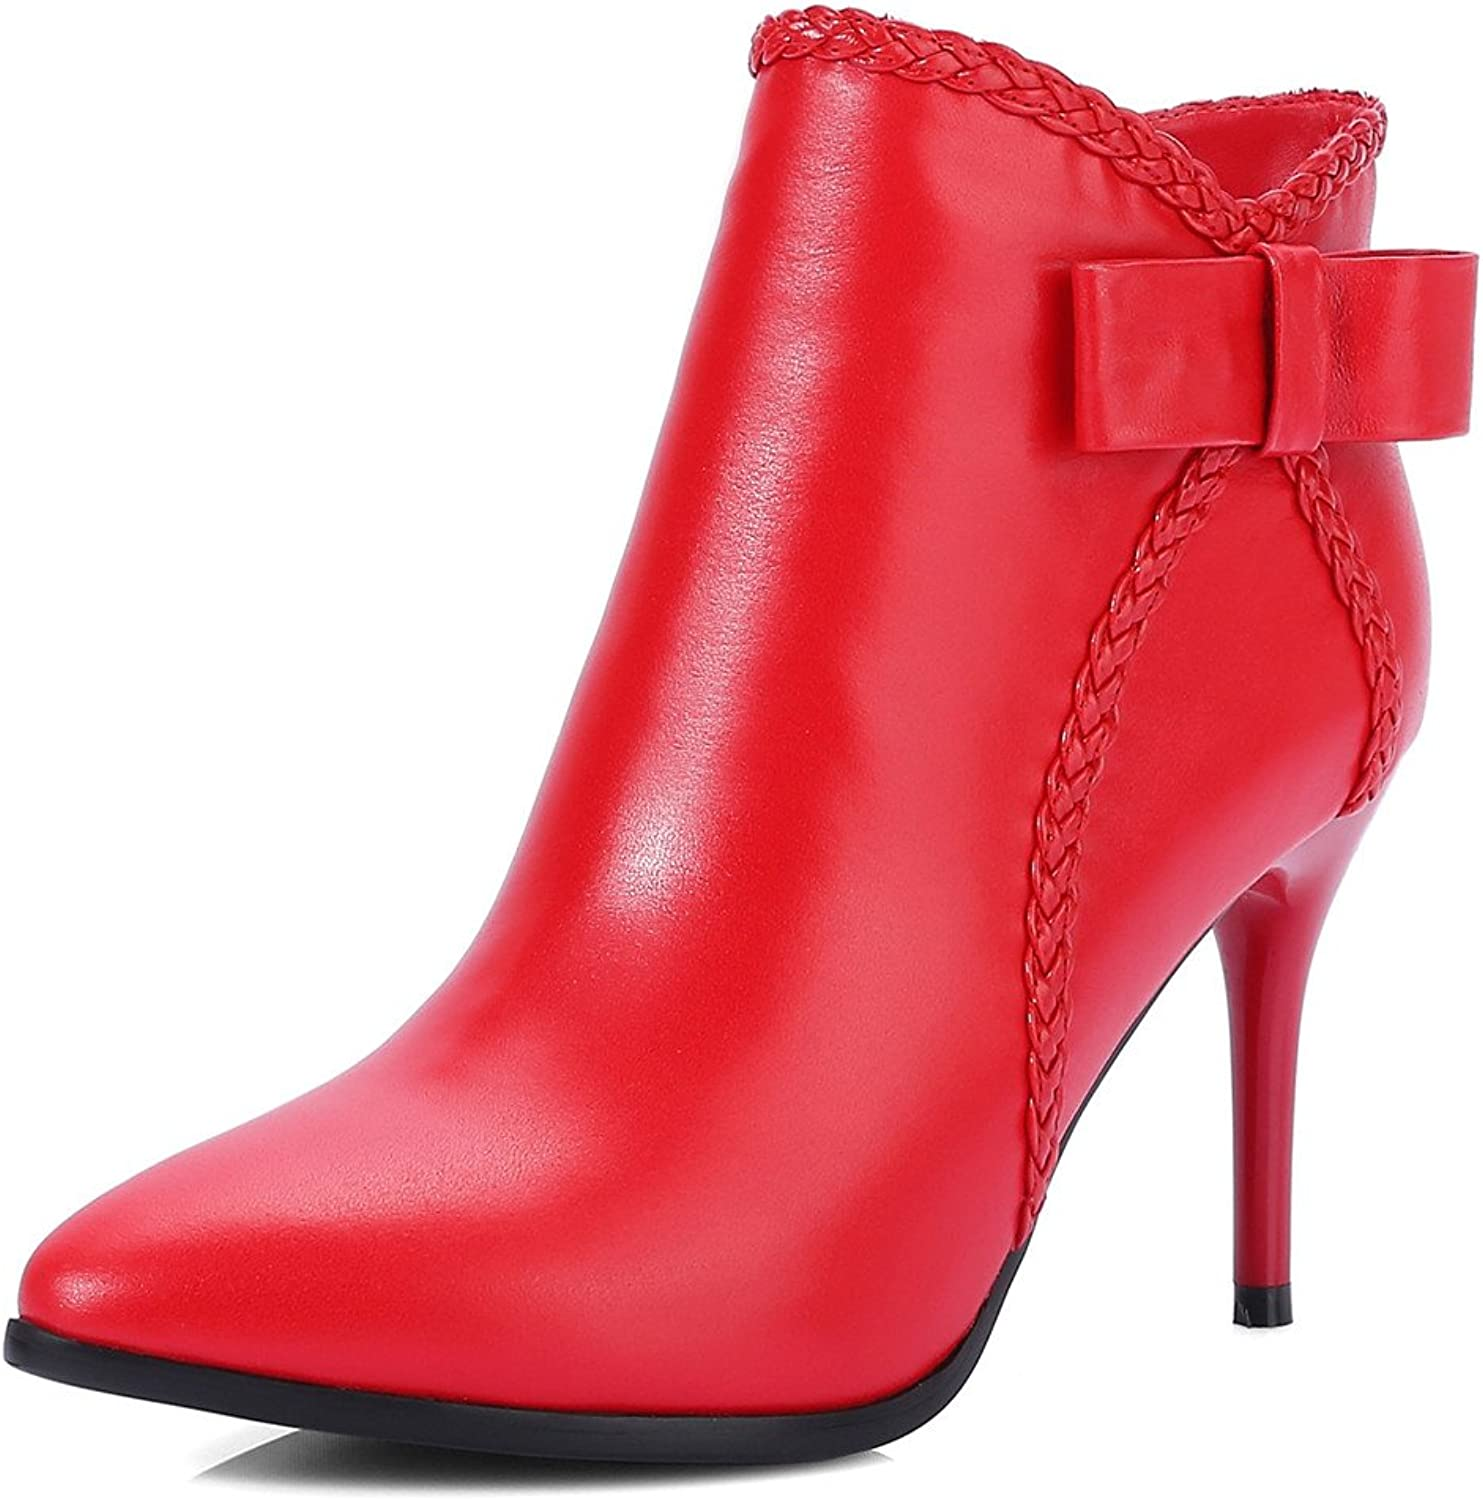 Nine Seven Genuine Leather Women's Pointed Toe Stiletto Heel Handmade Fashion Ankle Booties with Bow